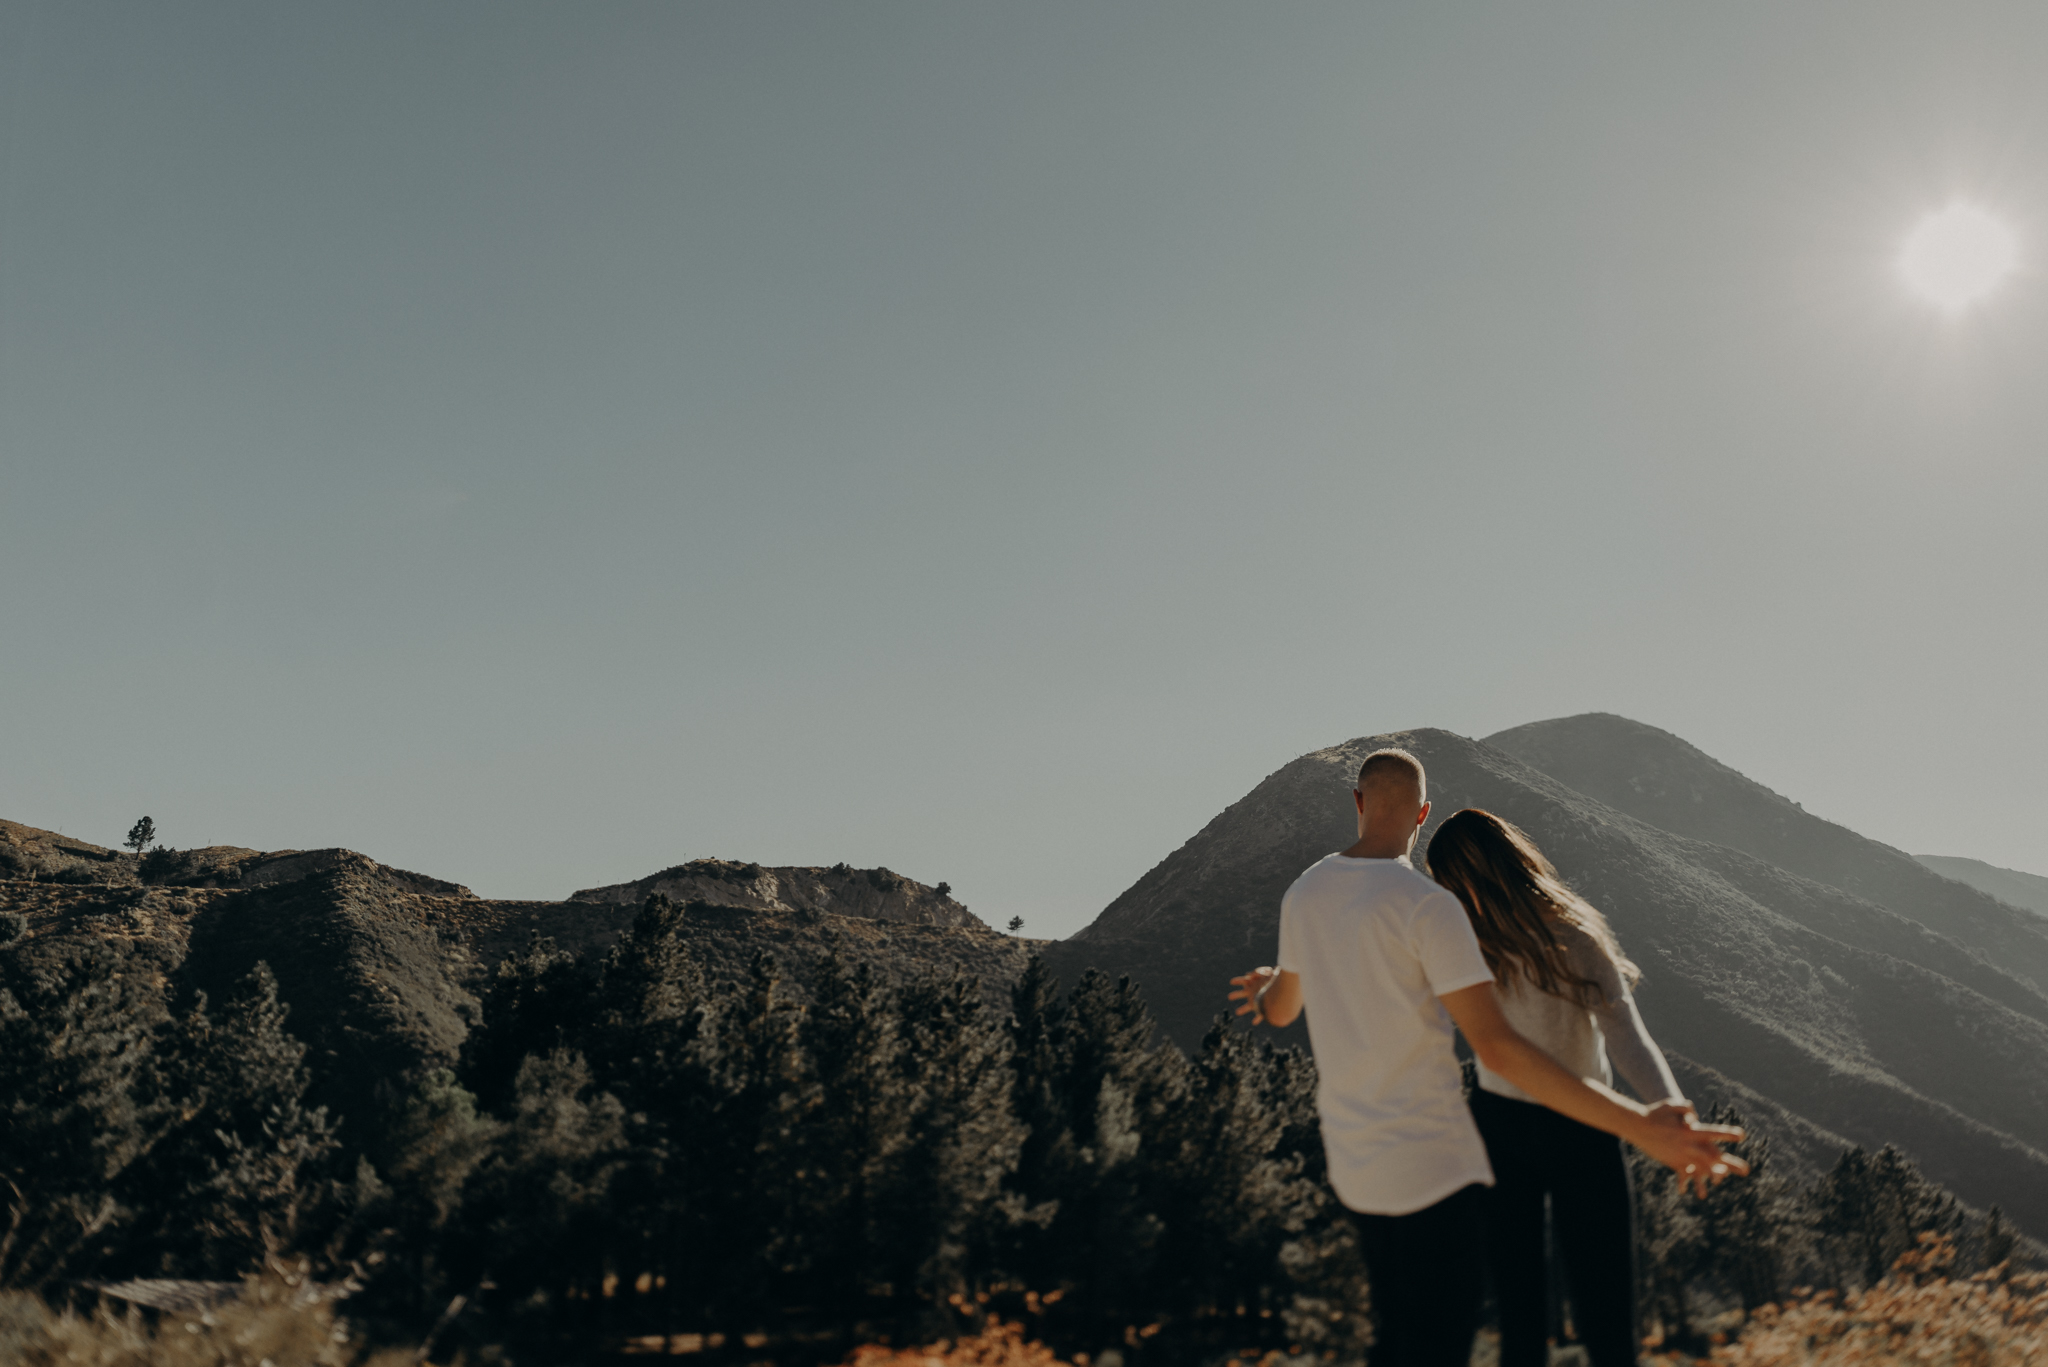 Isaiah + Taylor Photography - Los Angeles Forest Engagement, Laid-back Wedding Photographer-002.jpg